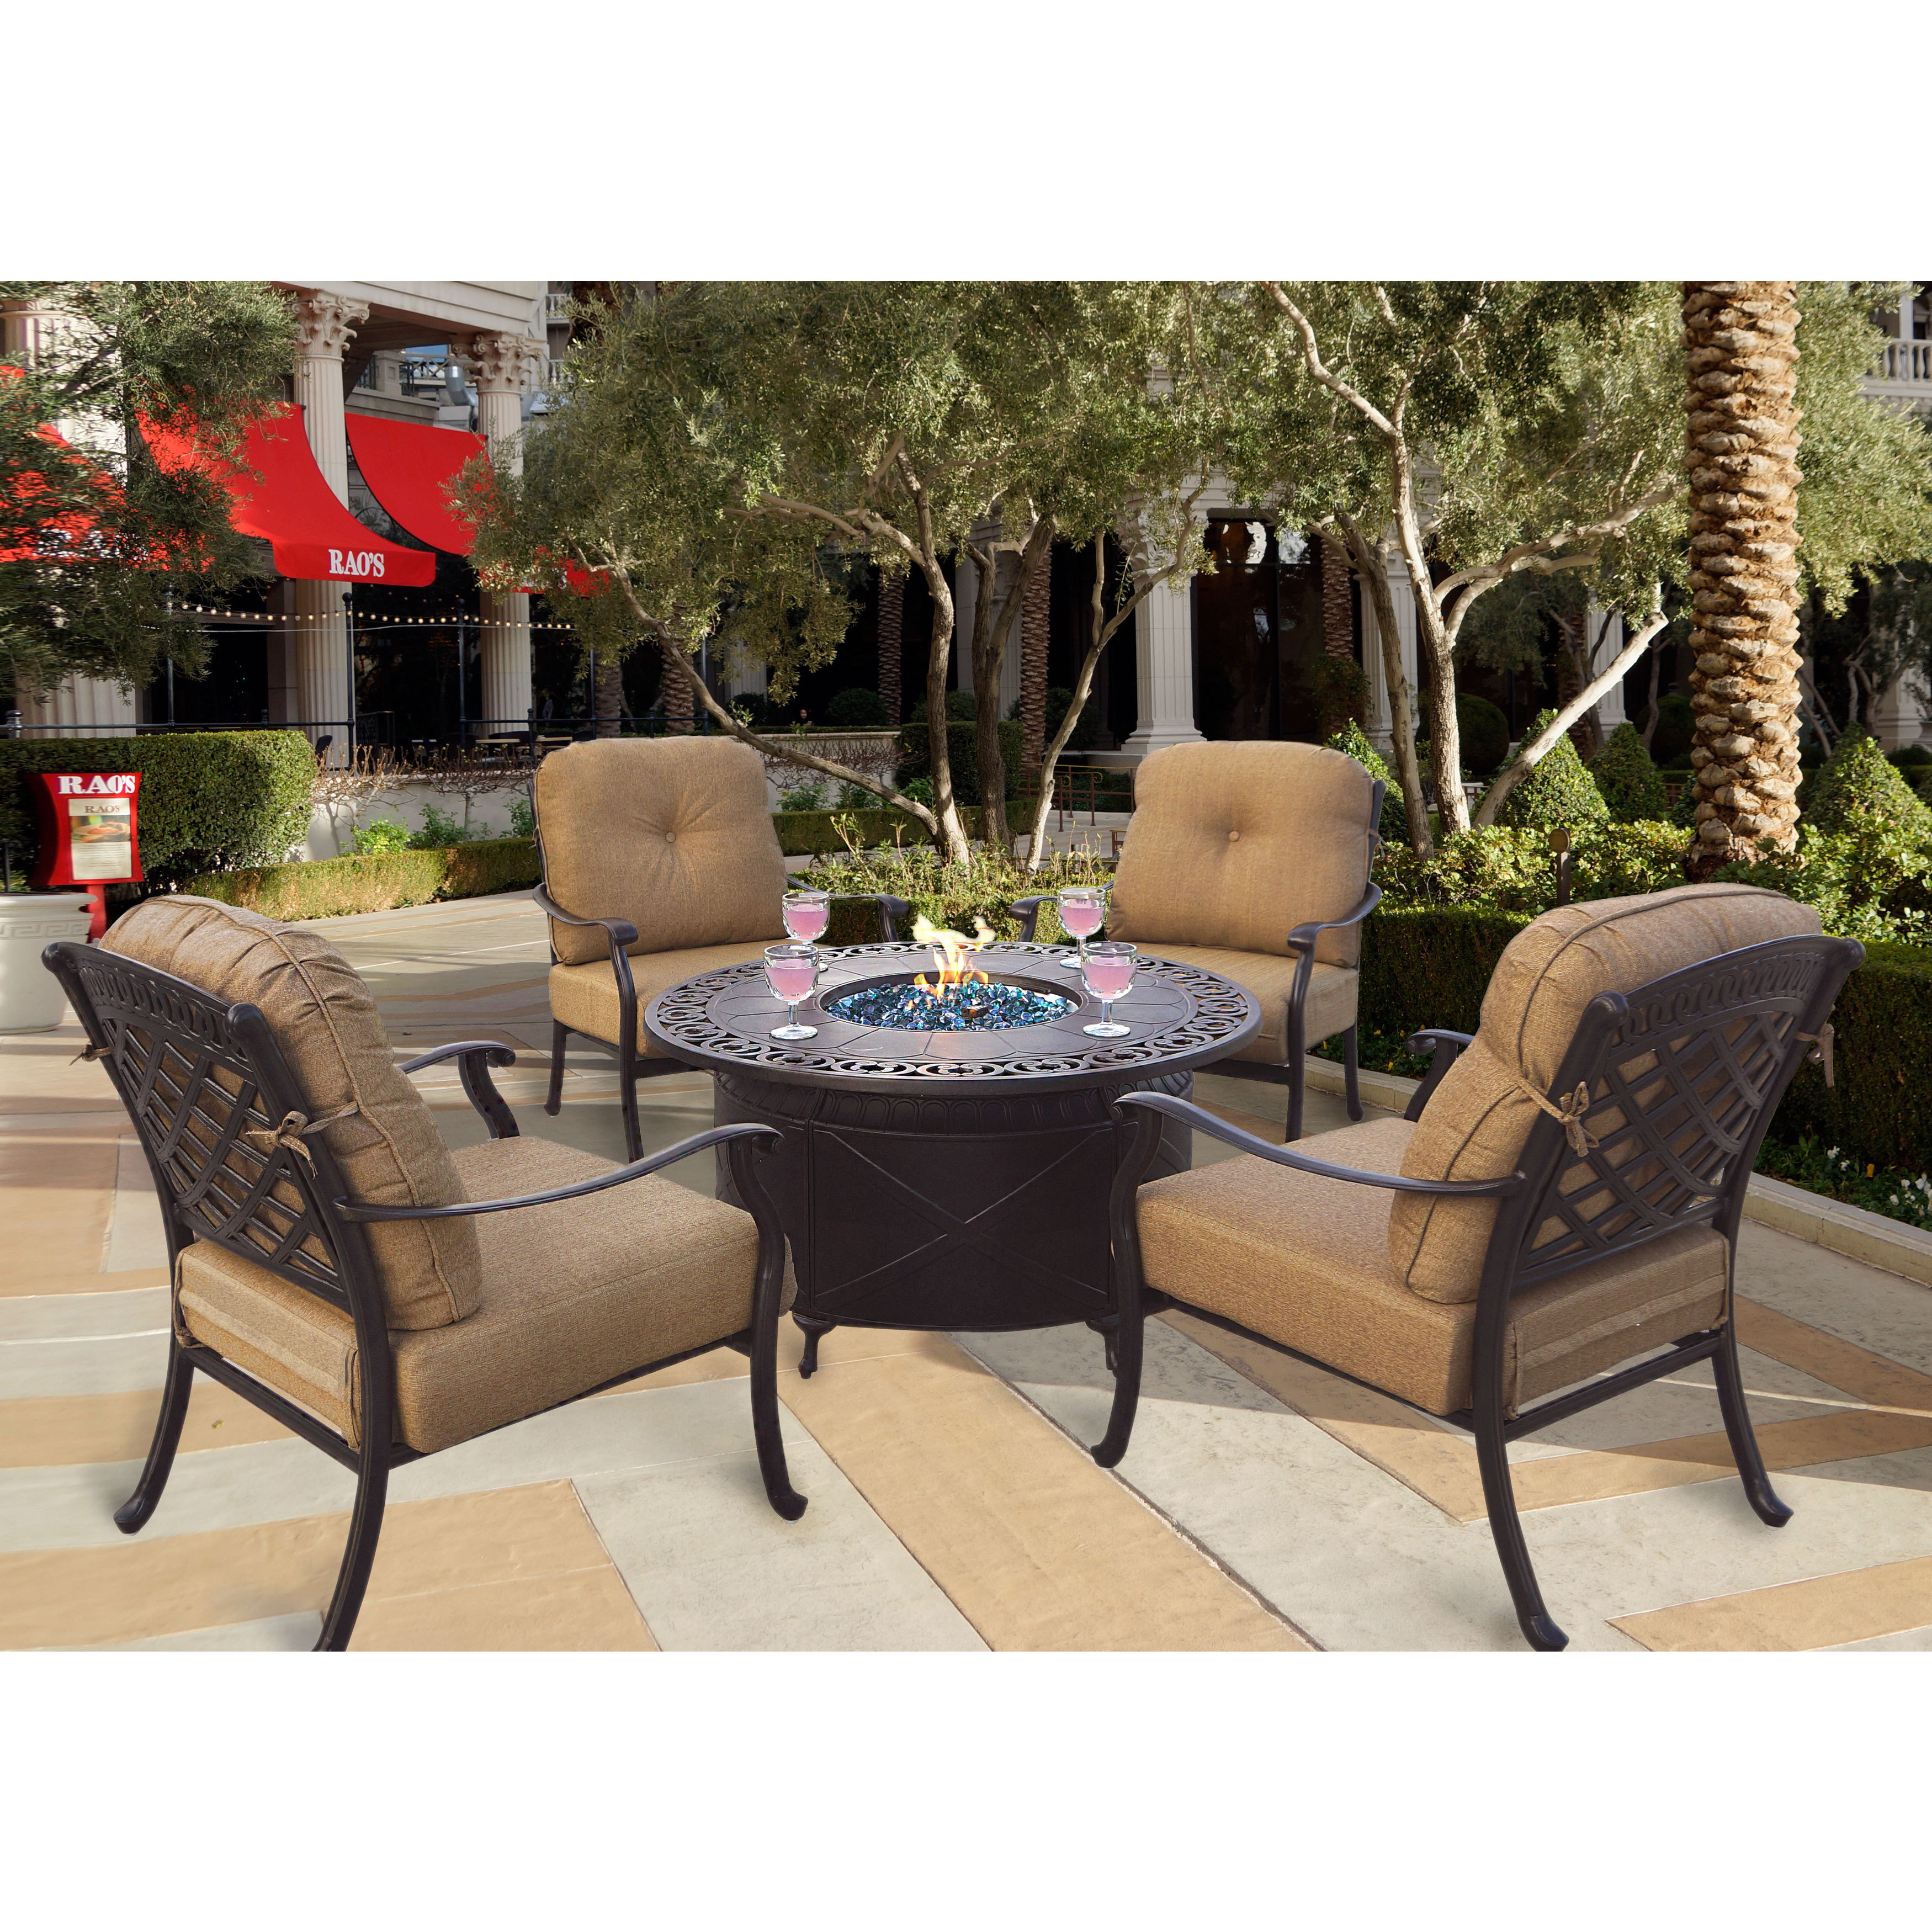 Darlee Oceanside Cast Aluminum 5 Piece Chat Set, 47u0027u0027 Round Propane Fire  Pit Chat Table   Free Shipping Today   Overstock   21543036